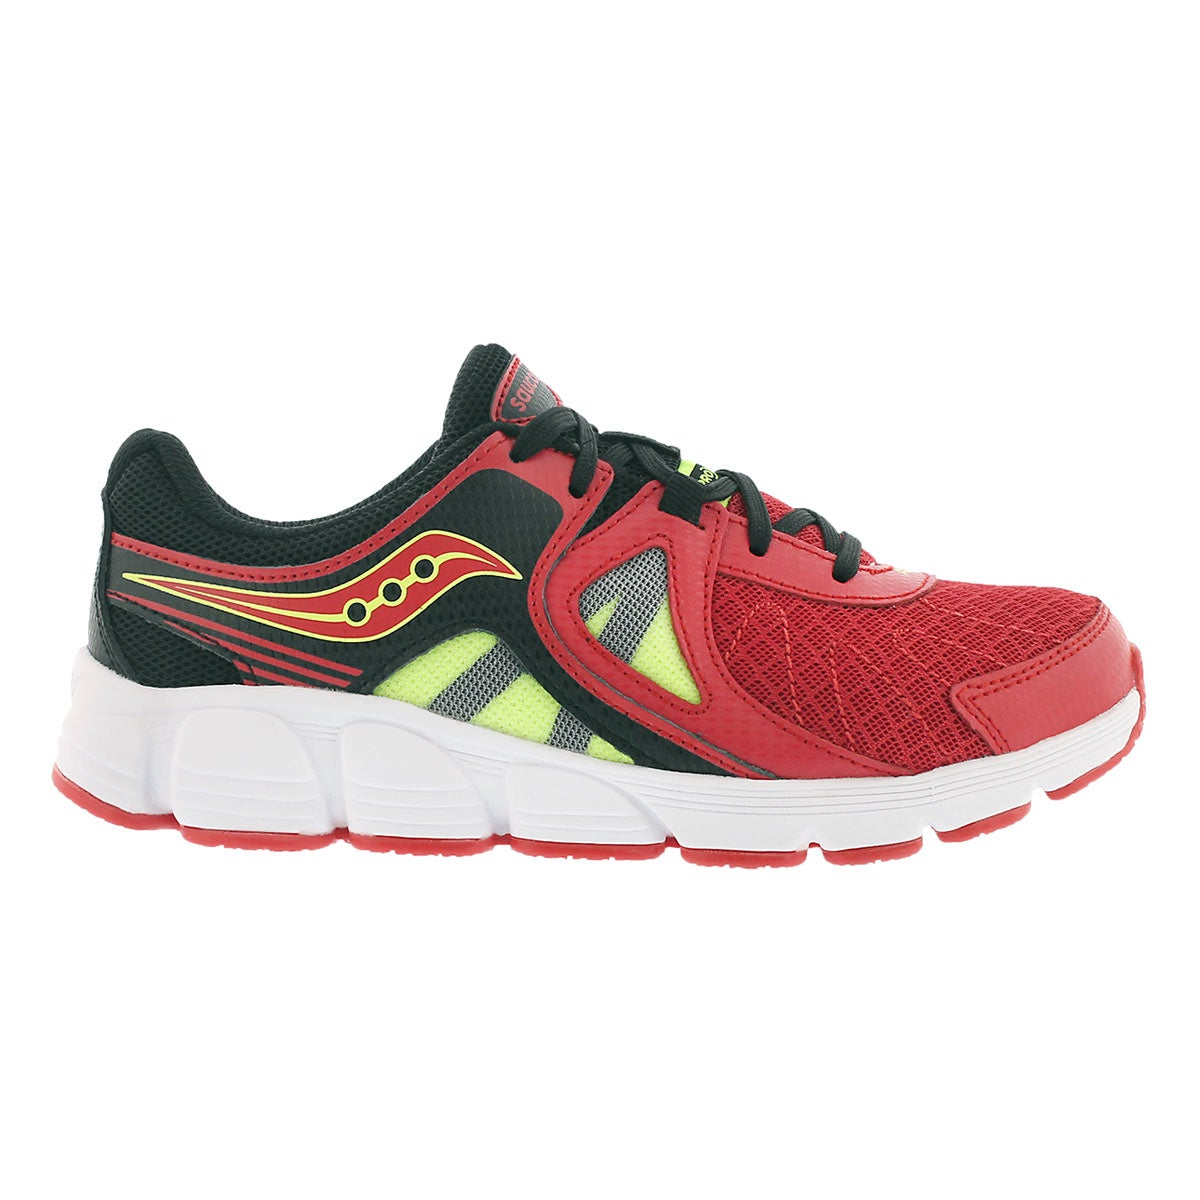 Bys Kotaro 3 red/blk lace up runner